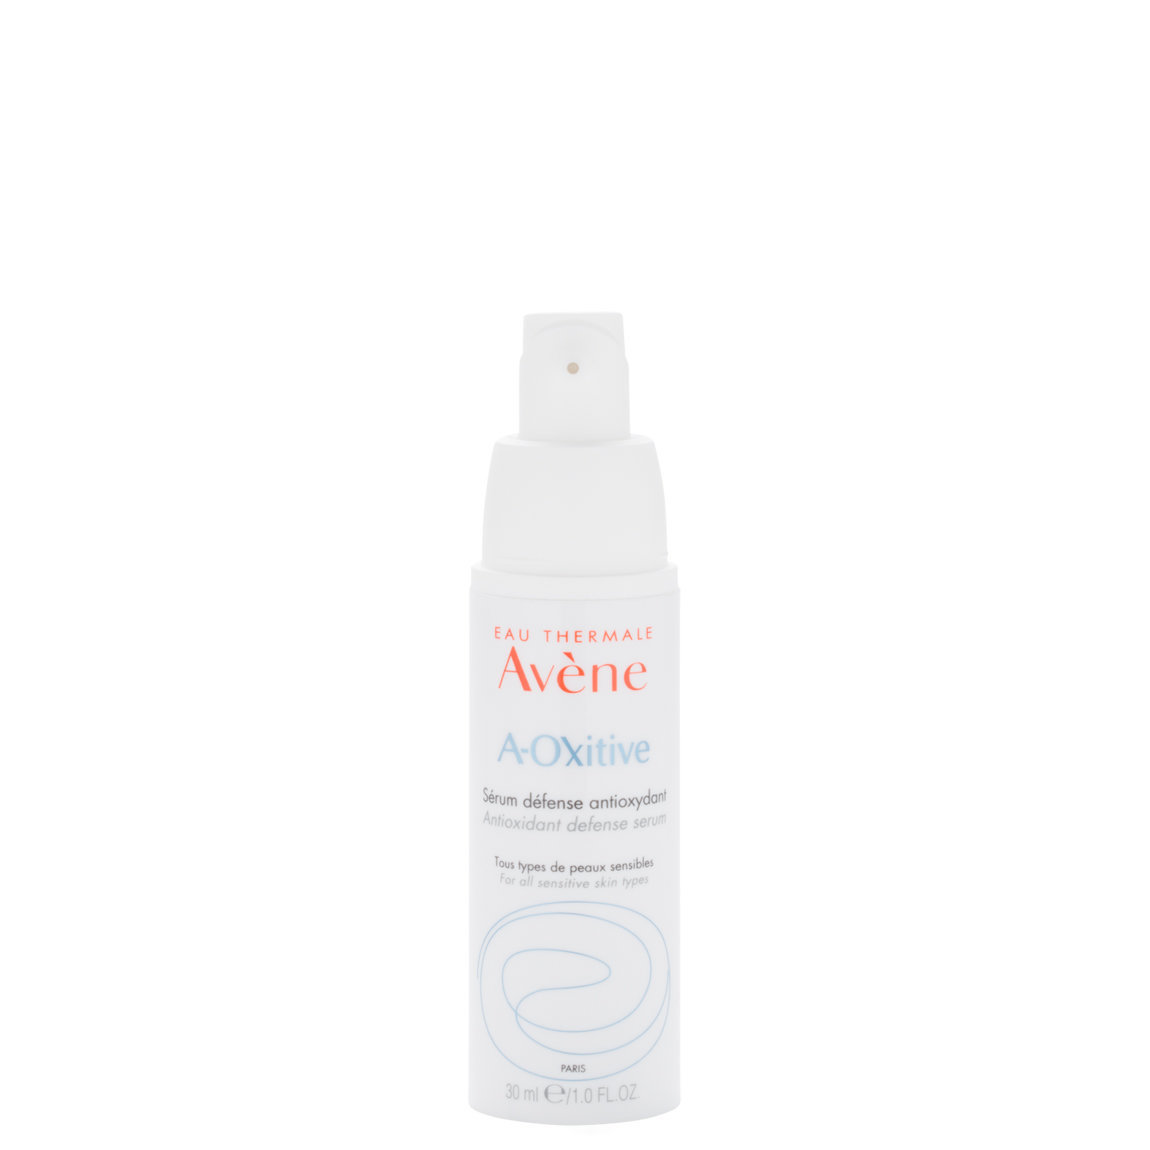 Eau Thermale Avène A-Oxitive Antioxidant Defense Serum